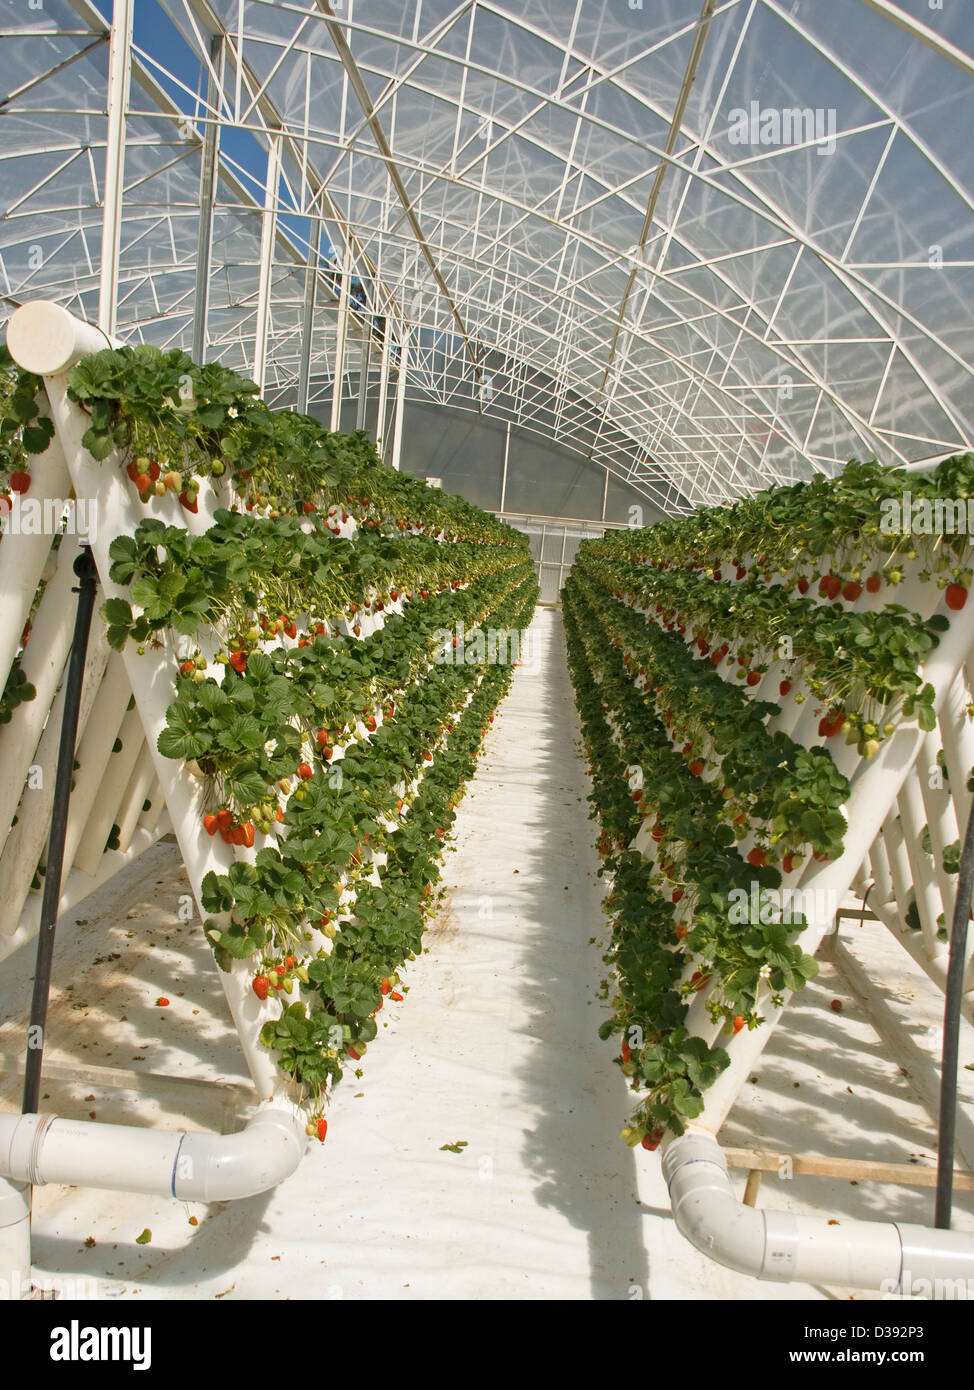 Rows of ripe red strawberries and foliage of plants growing in greenhouse in an extensive hydroponic system on a - Stock Image